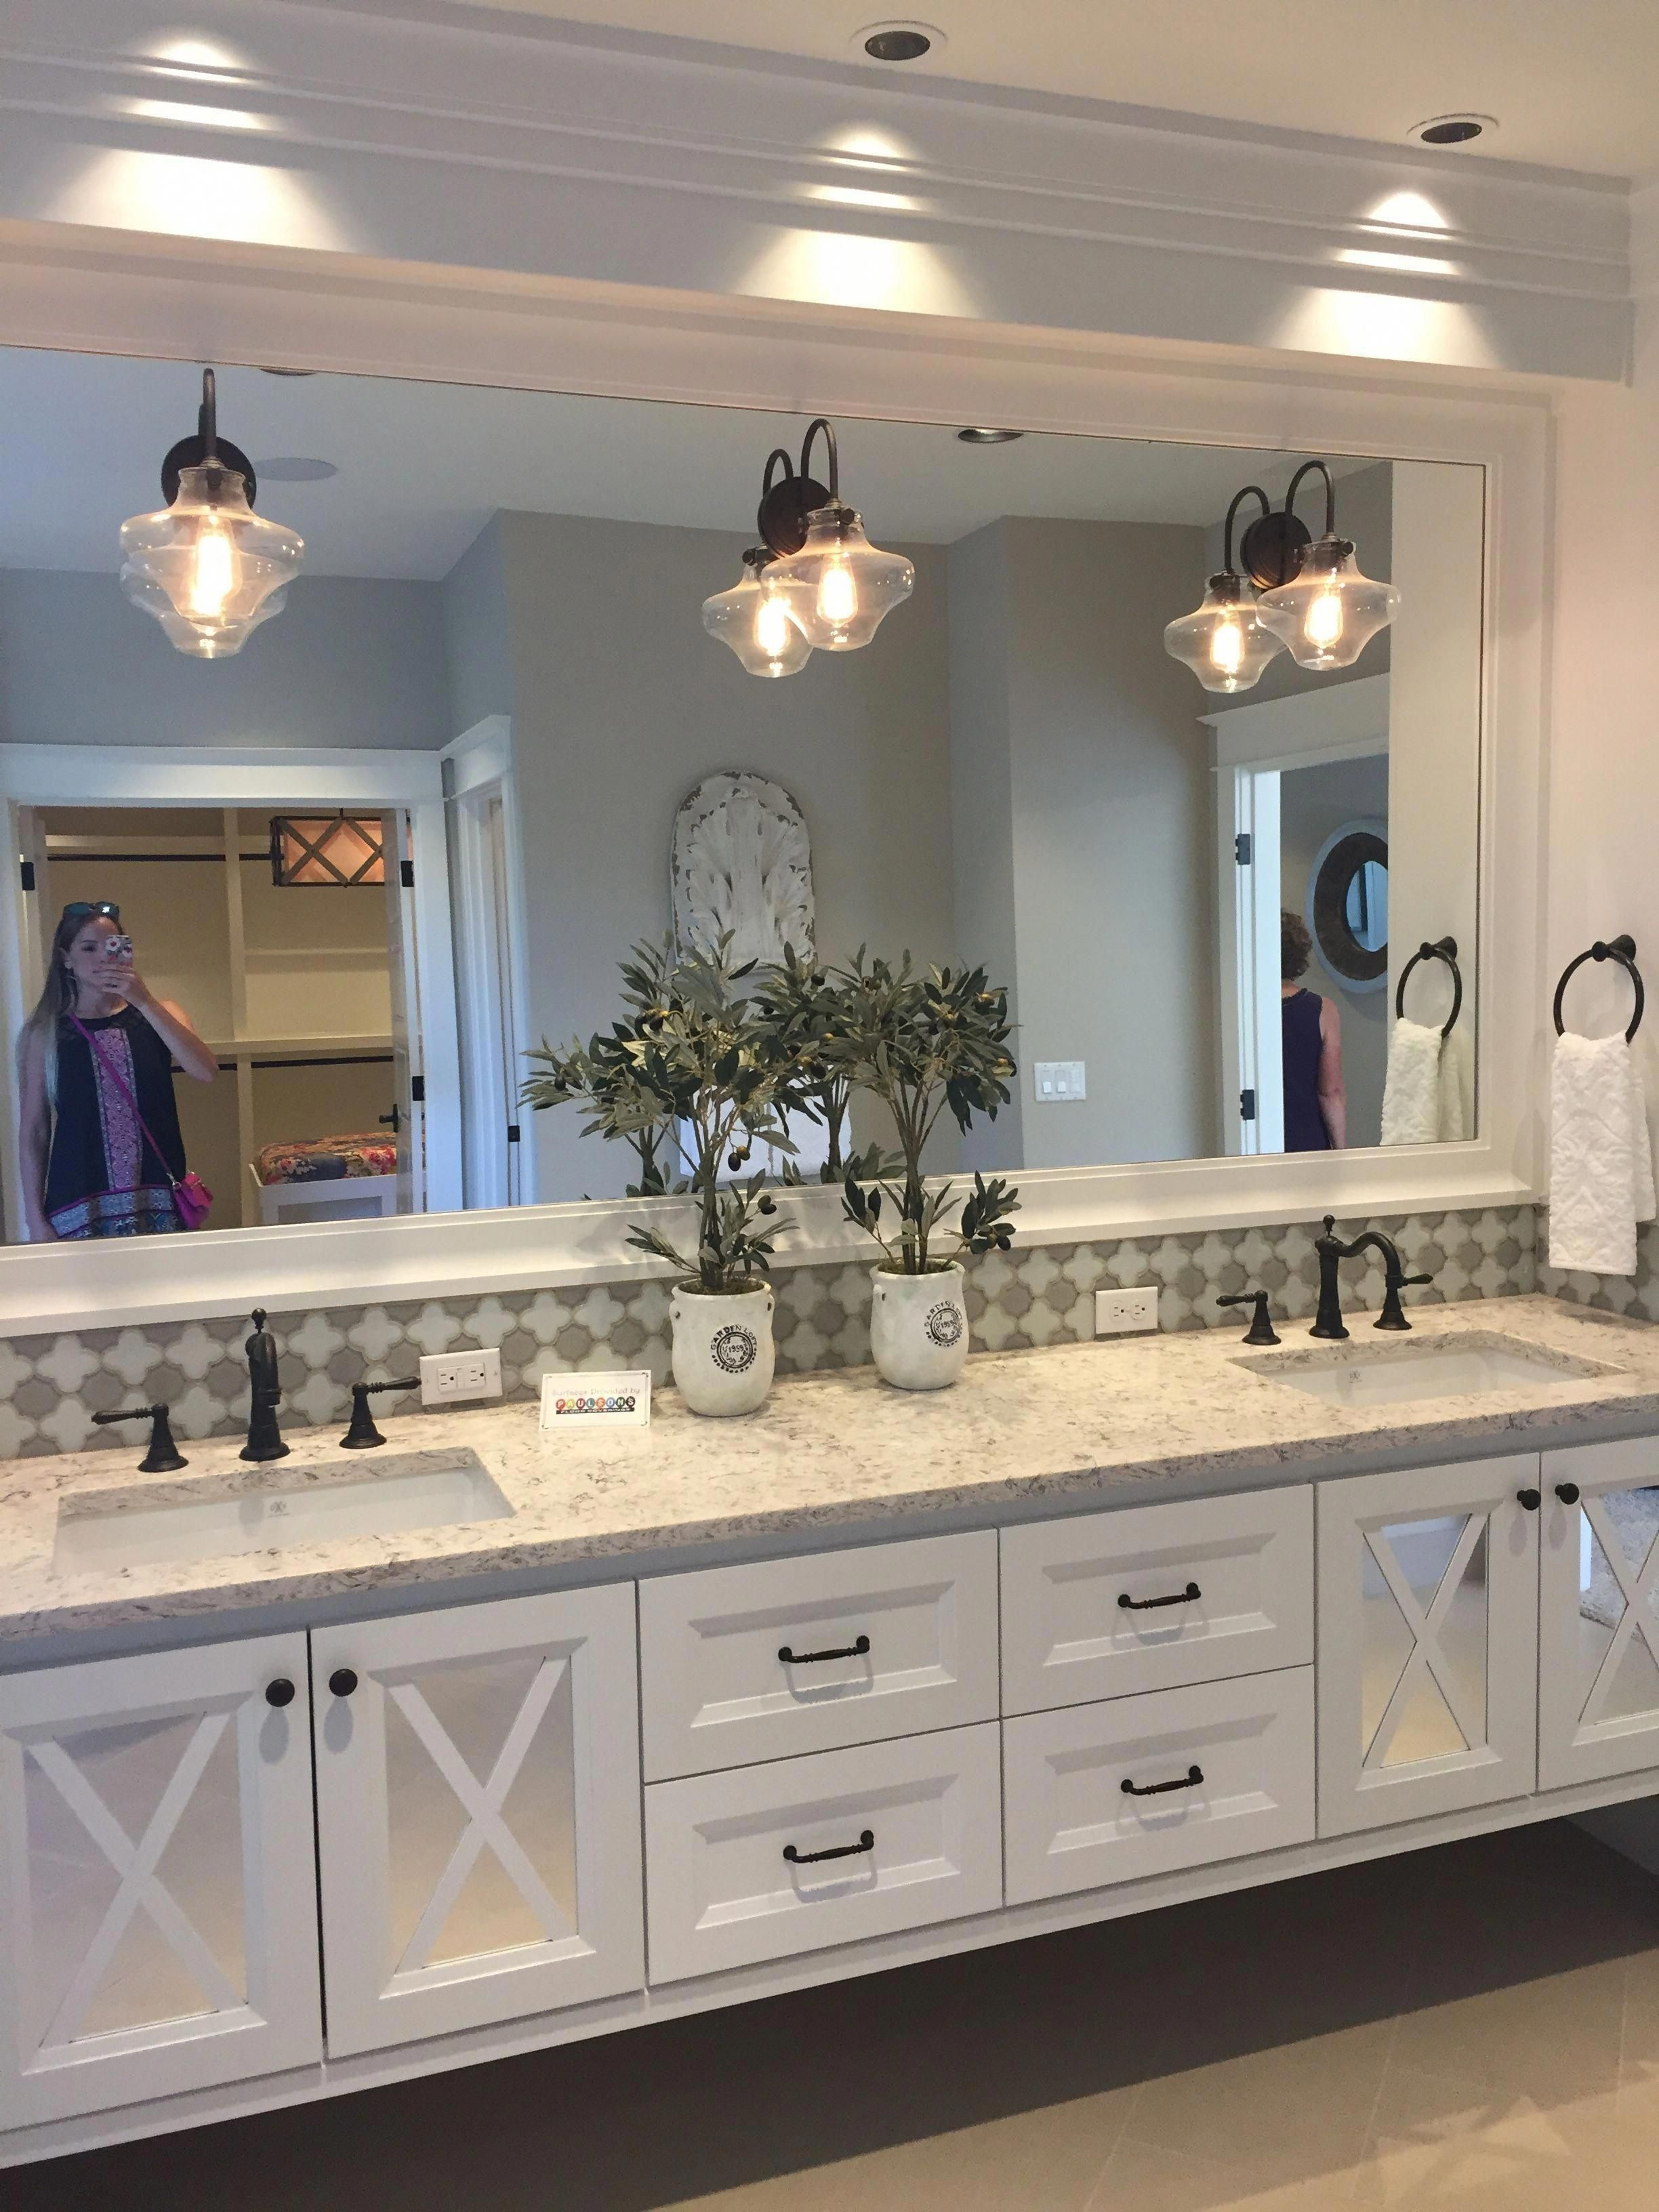 23 vanities bathroom ideas to get your best on best bathroom renovation ideas get your dream bathroom id=94474